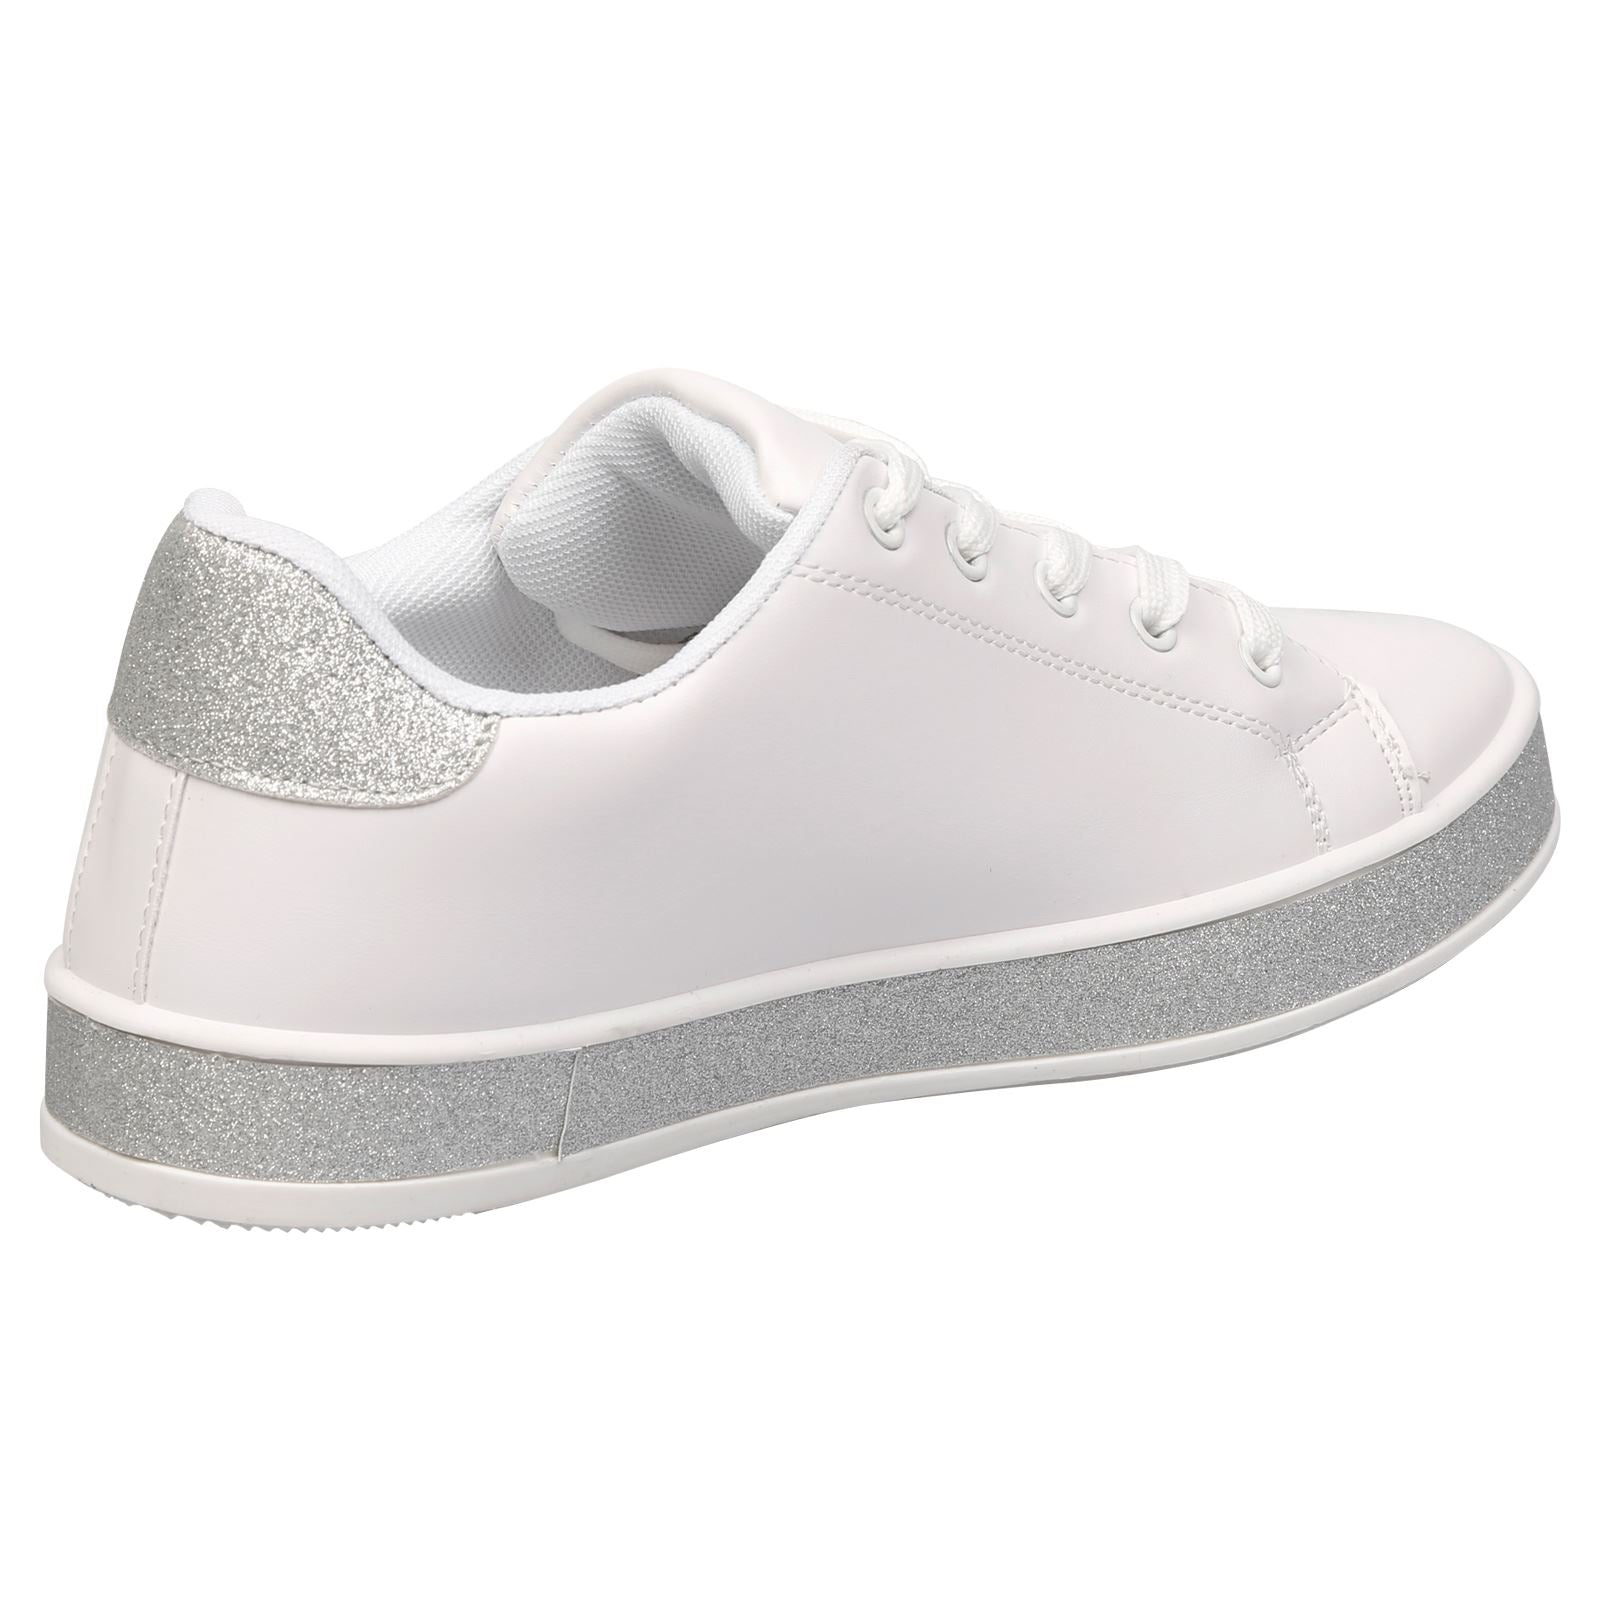 Koko Leather Look Skater Pumps in White with Silver Glitter